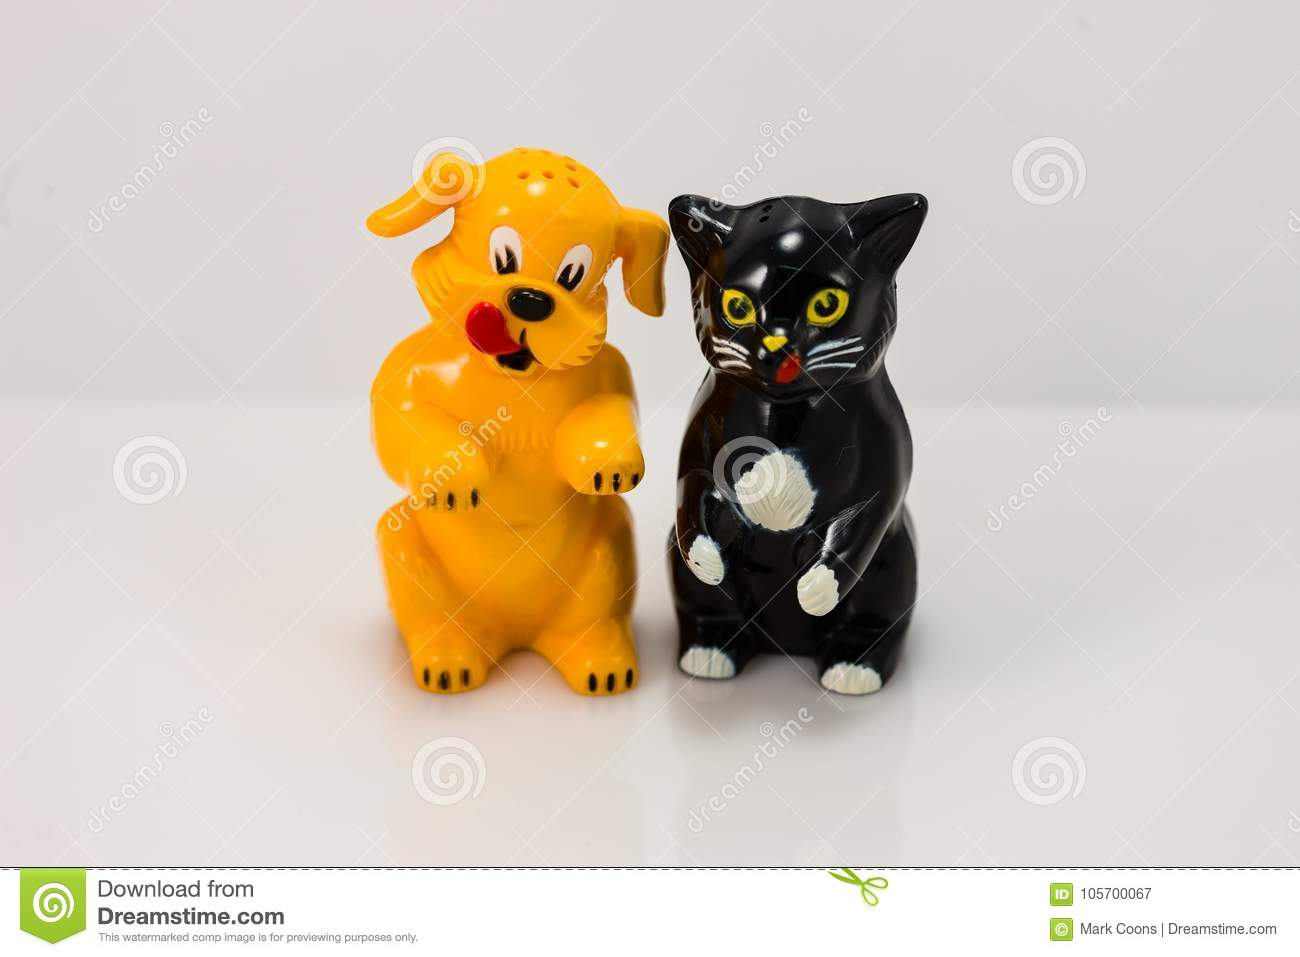 Plastic Dog And Cat Salt And Pepper Shakers Stock Image Image Of Plastic Shaker 105700067